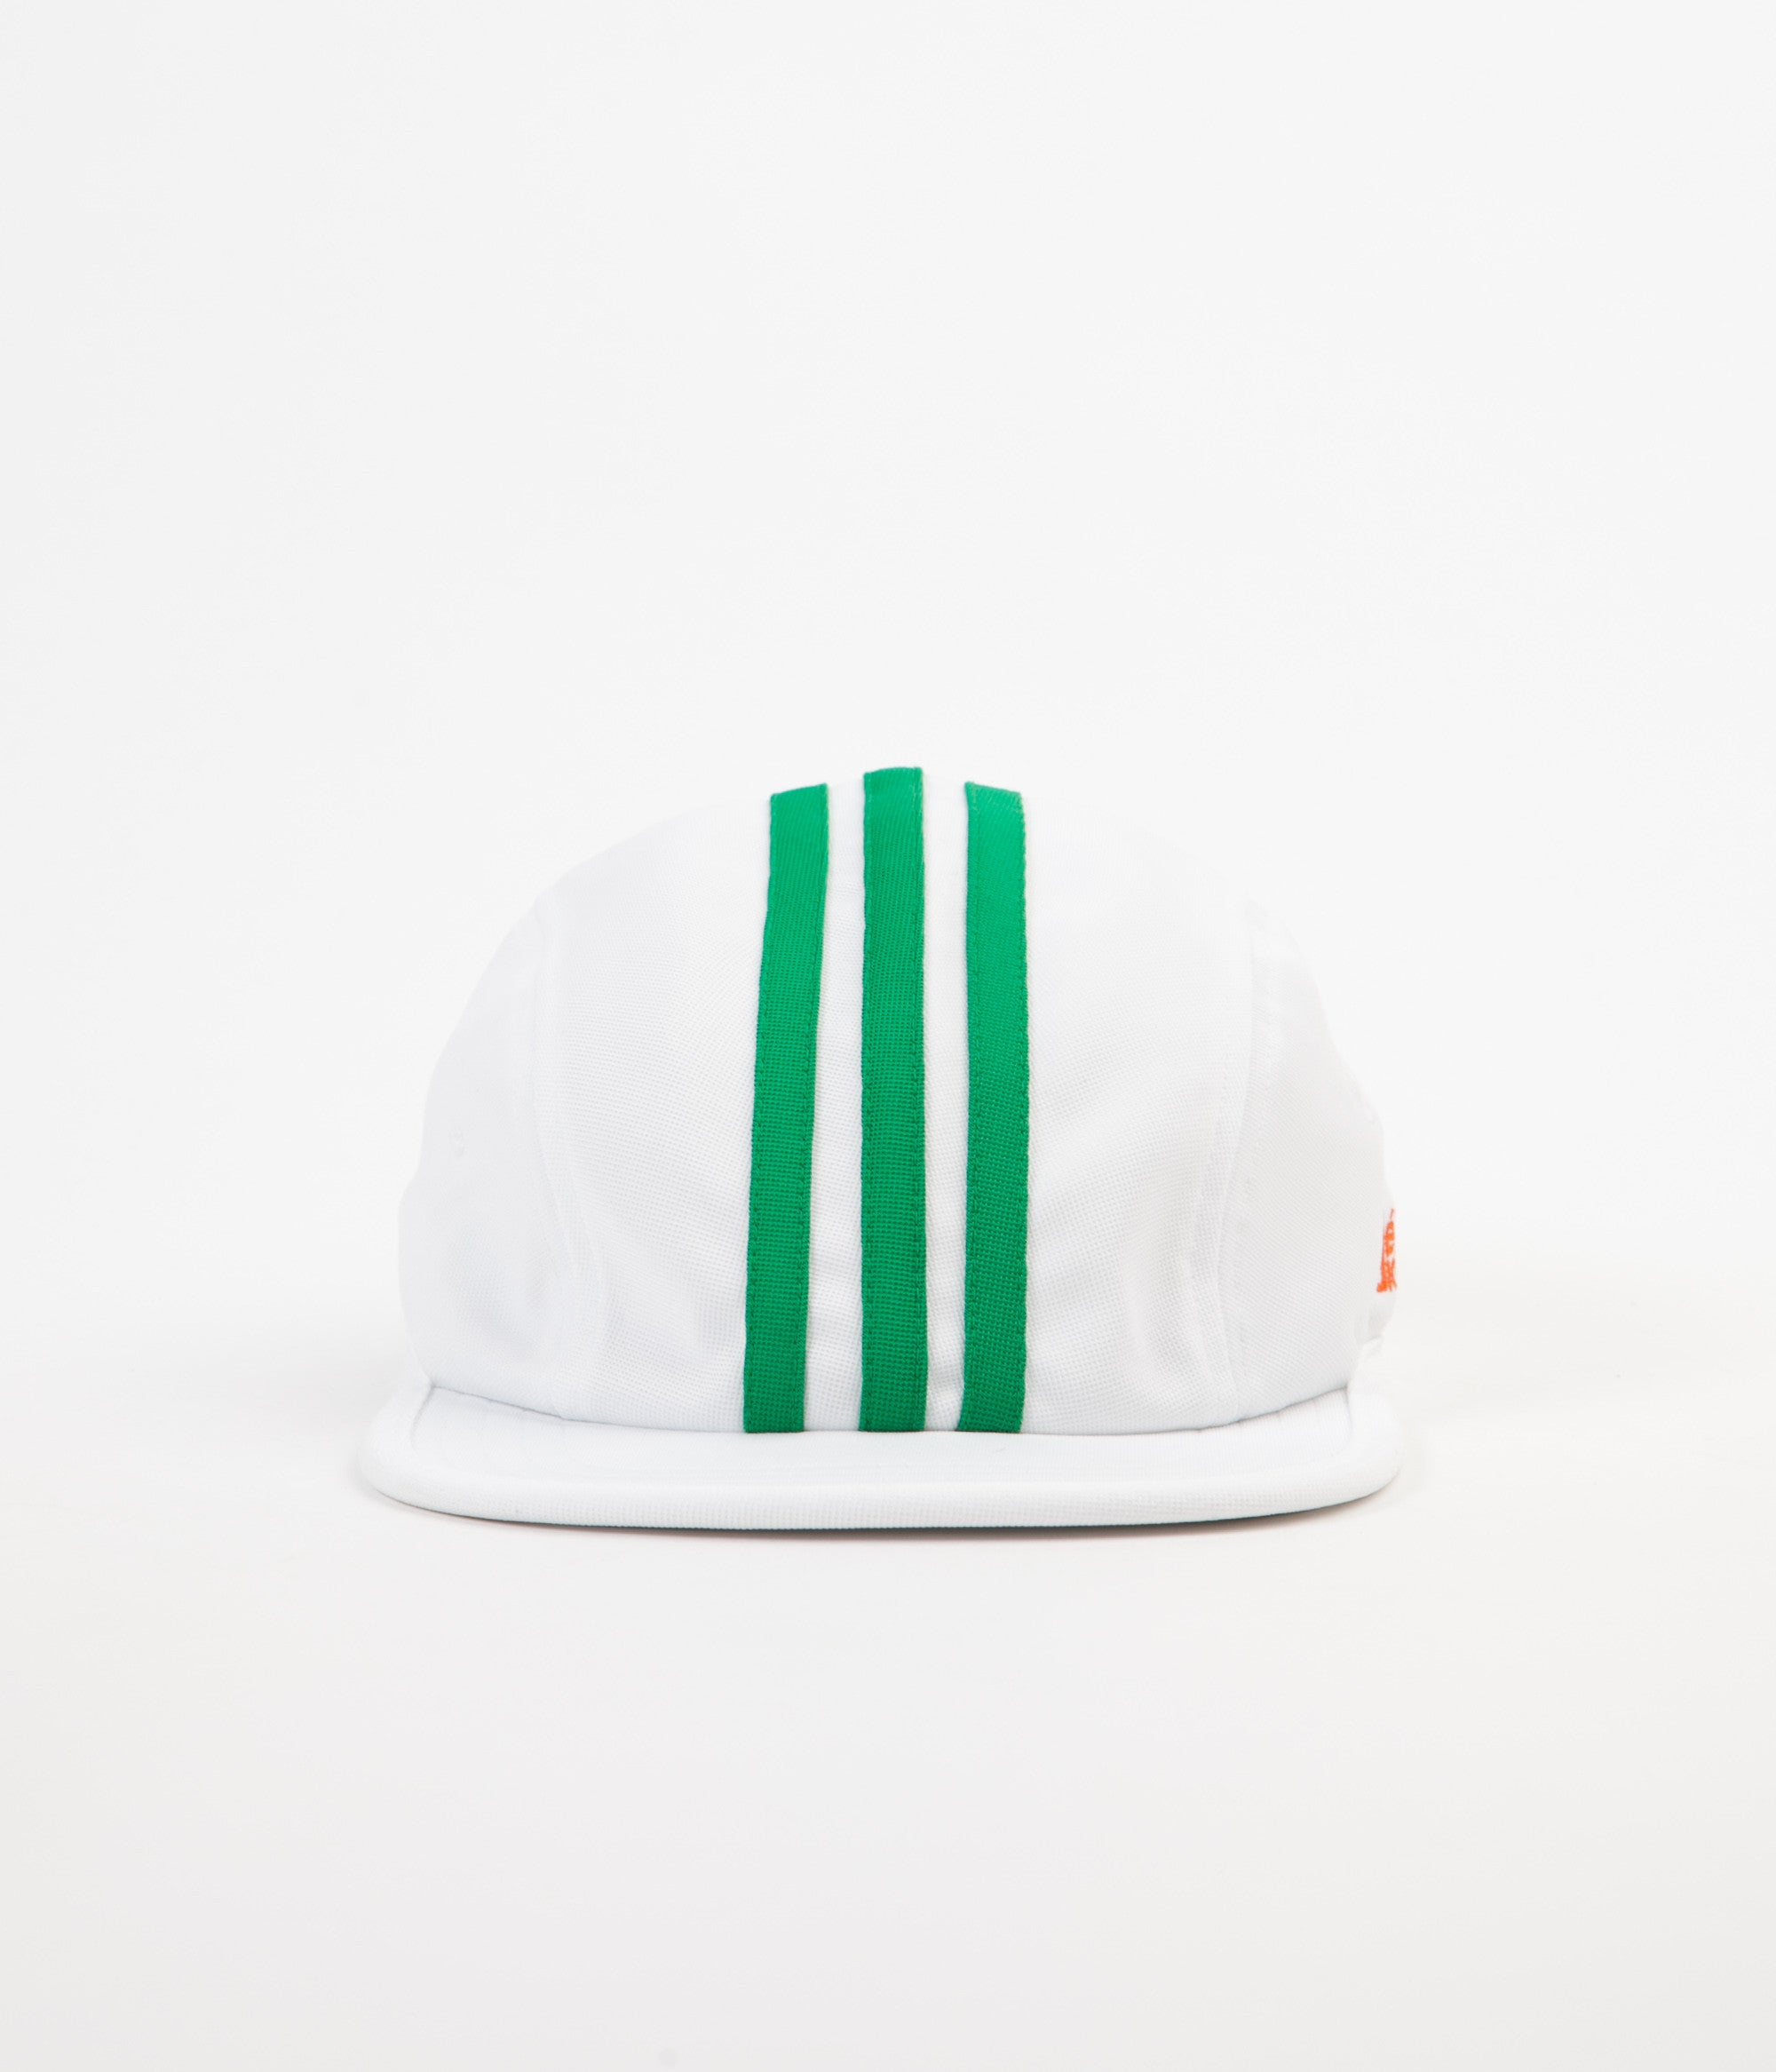 091c0d4904c Adidas x Helas 4 Panel Cap - White   Green